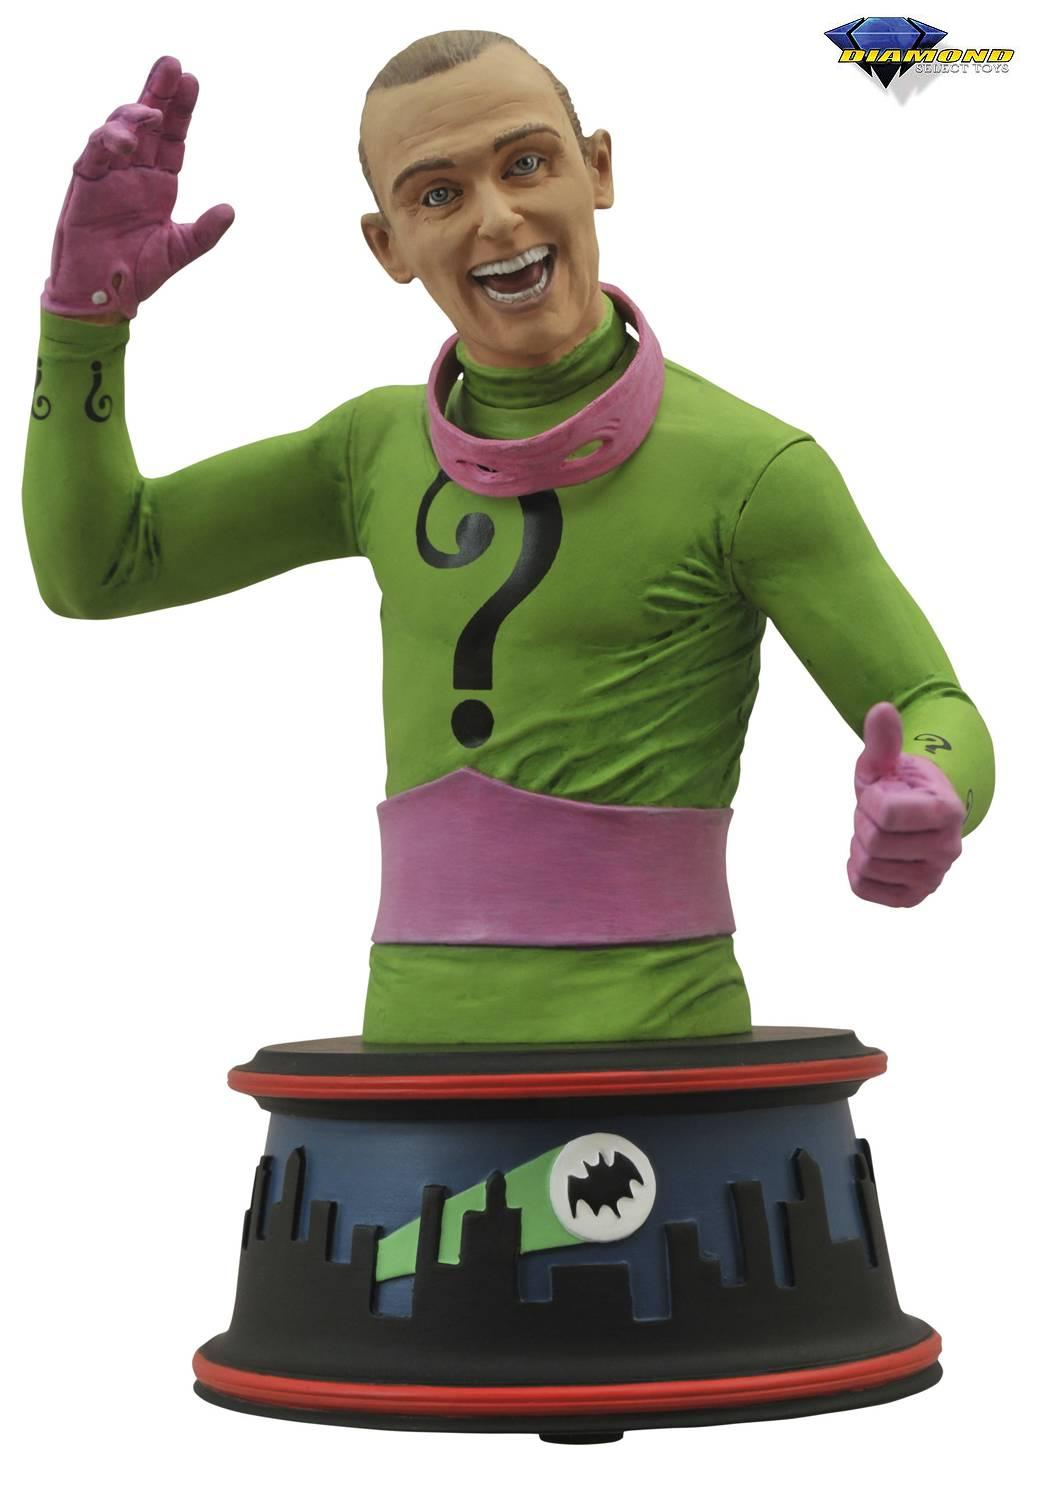 Diamond DC Comics Batman 1966 TV Series Riddler Mini-Bust